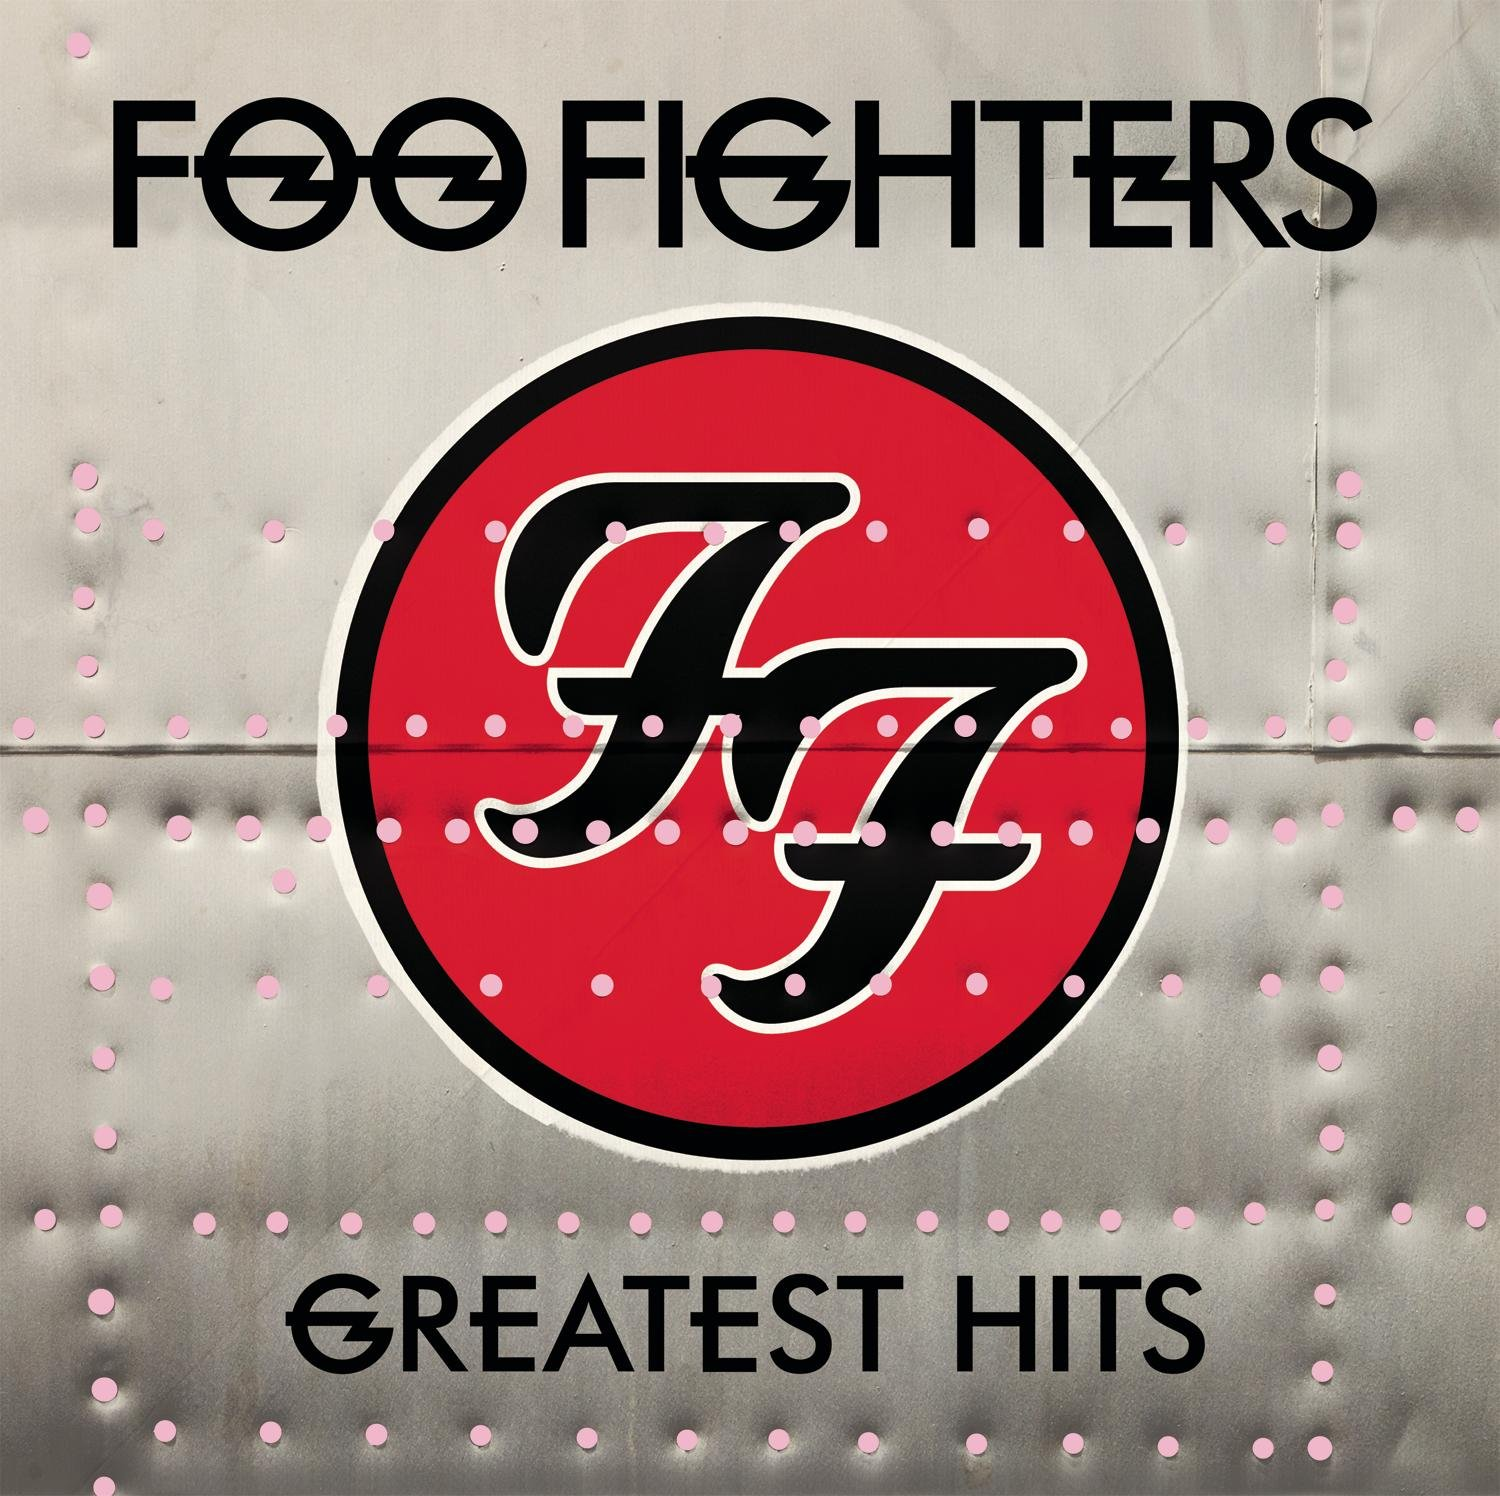 Foo Fighters - Greatest Hits by Legacy